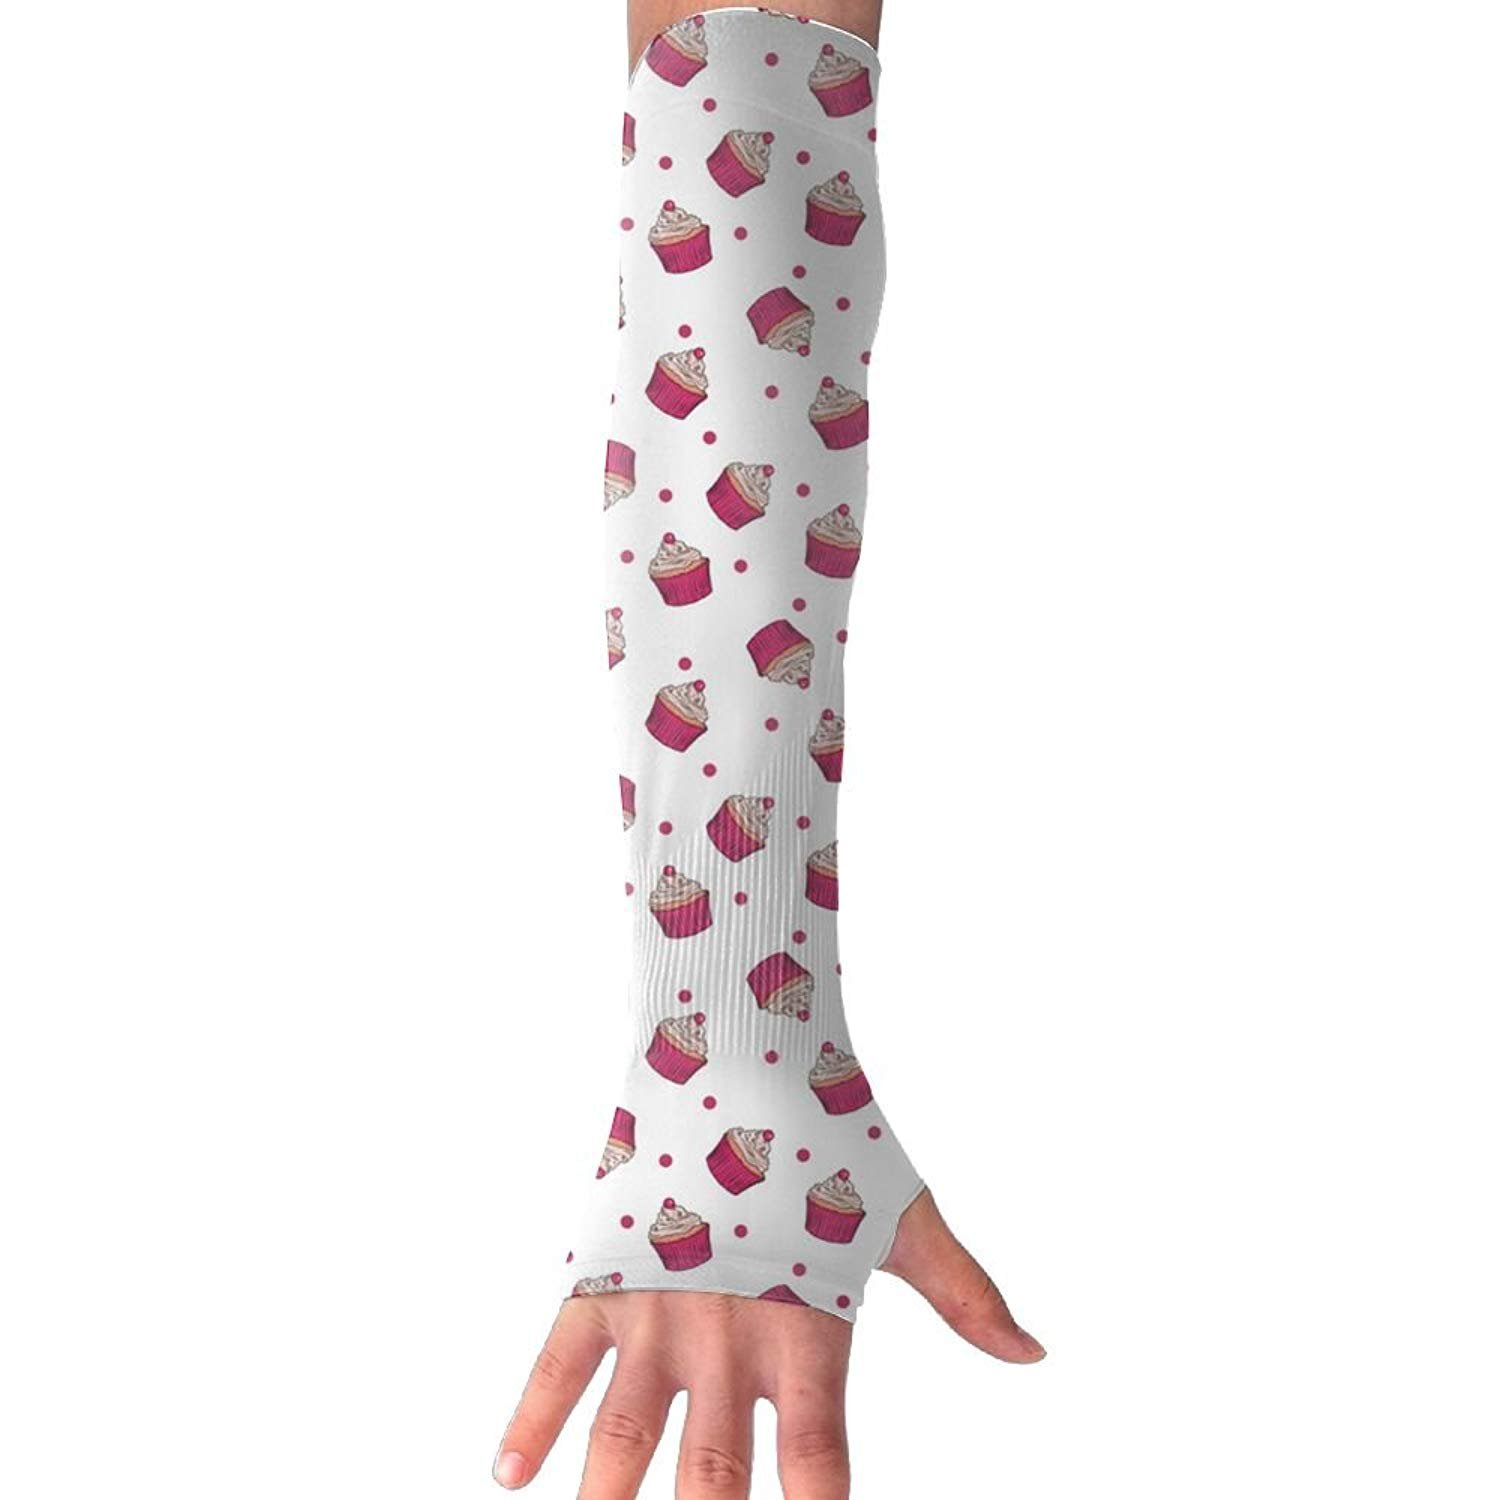 Unisex Cup Cake Sunscreen Outdoor Travel Arm Warmer Long Sleeves Glove